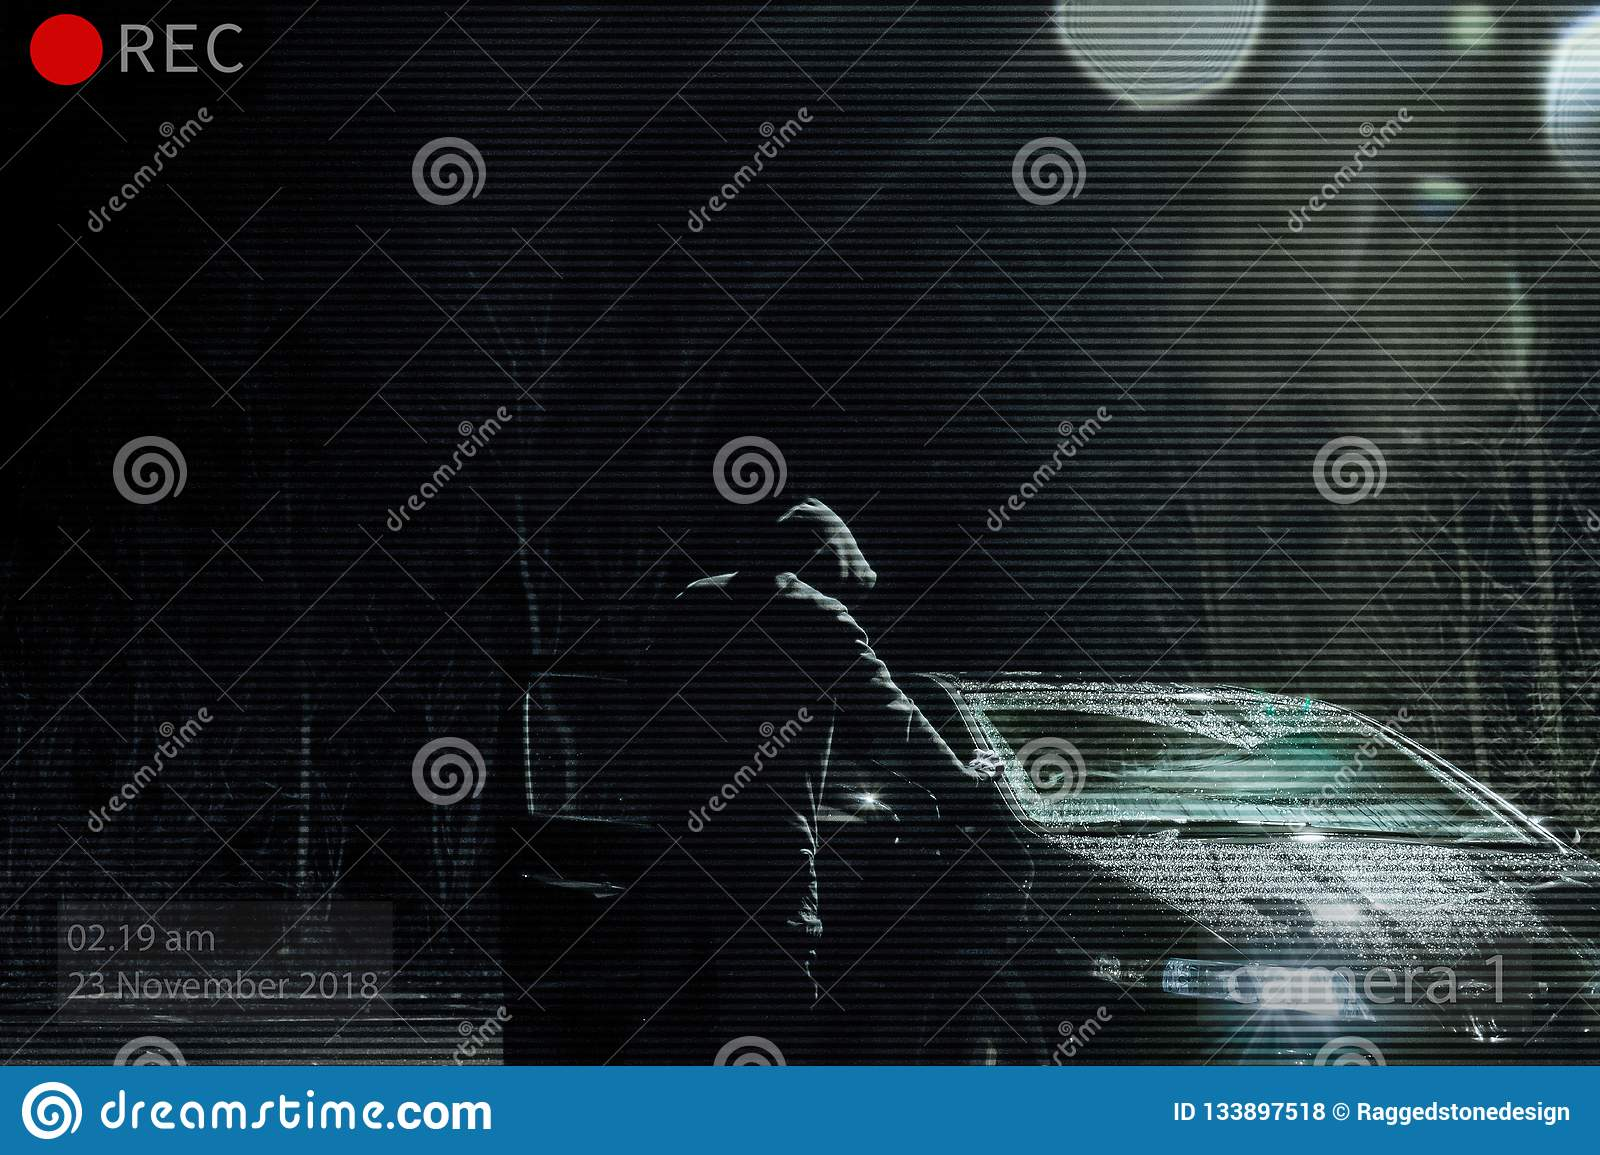 A Threatening Hooded Man Looking Into A Car At Night  Photoshop Edit